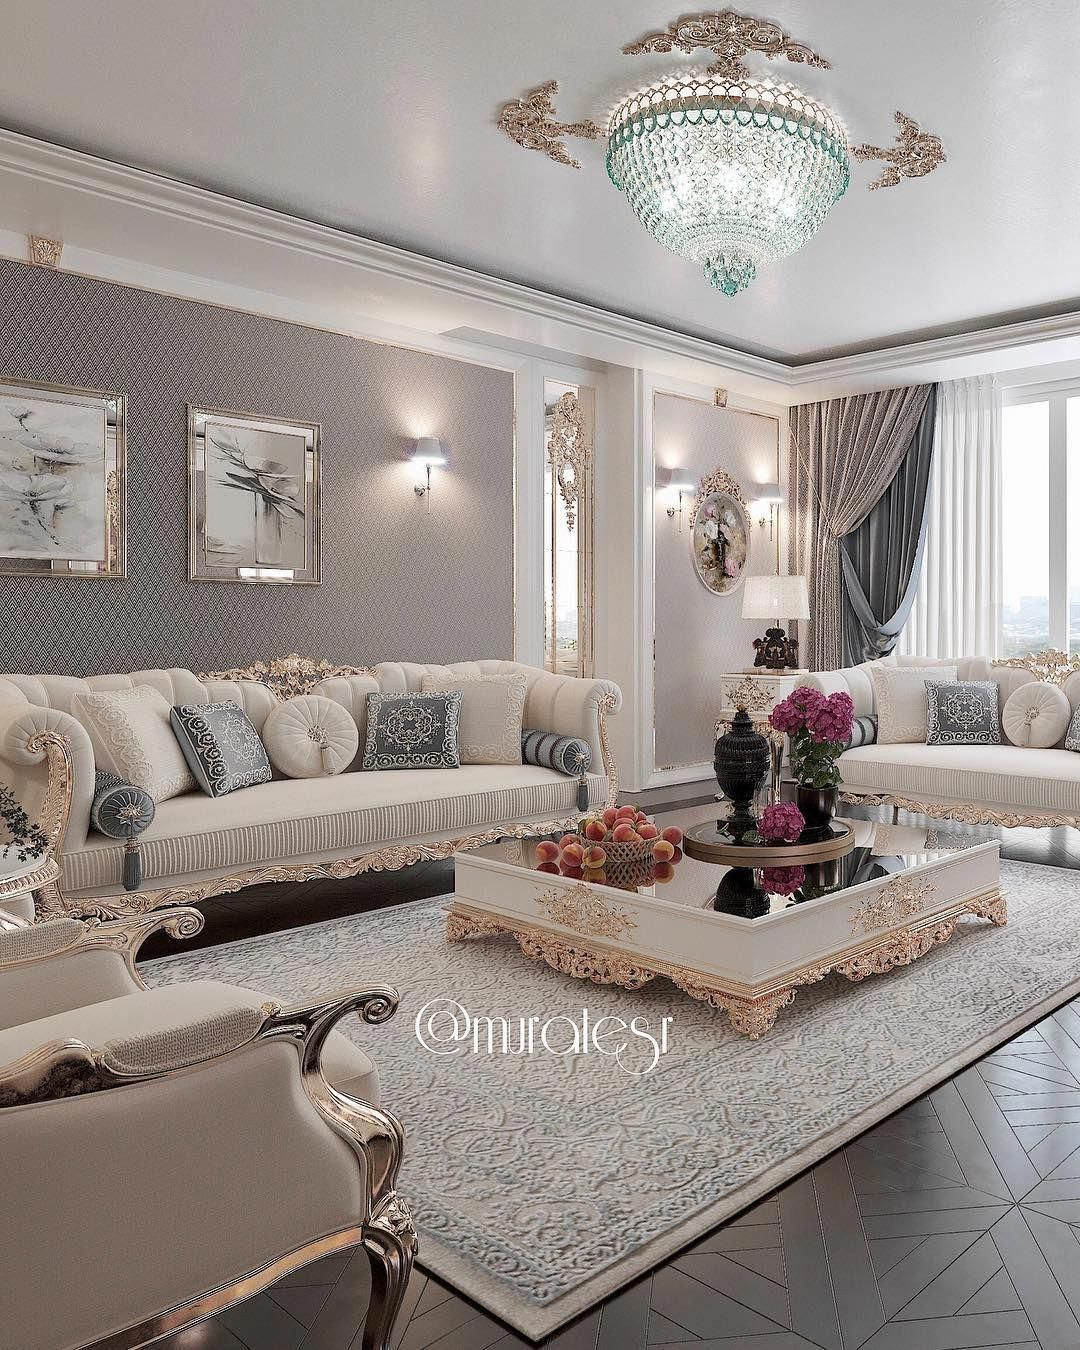 Amazing Living Room Designs: Create An Amazing Living Room Decor With Our Inspirations